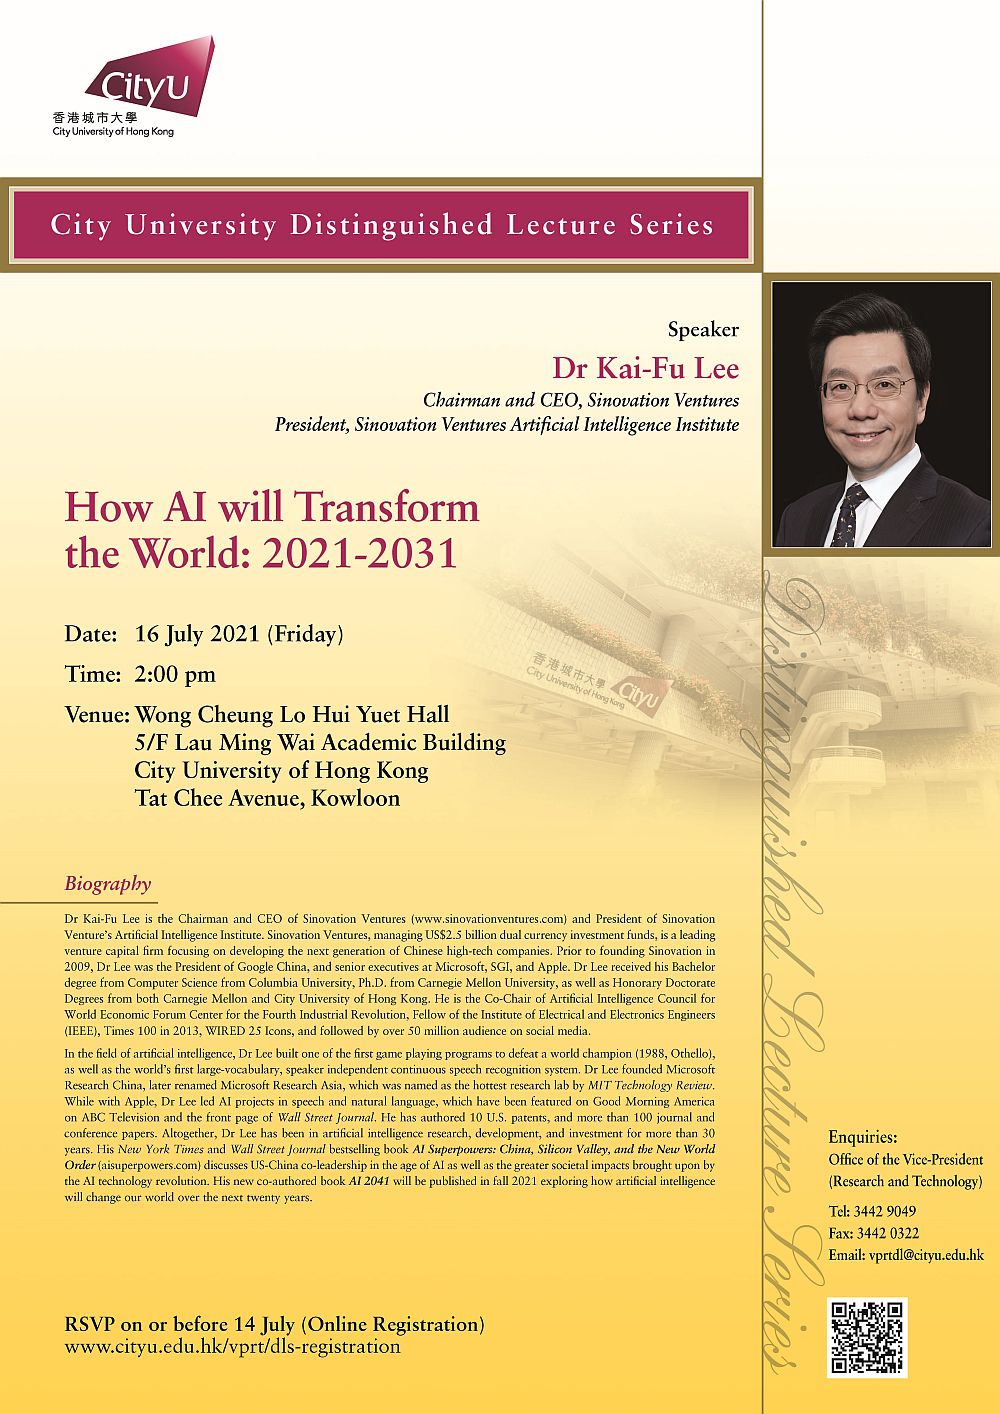 """CityU Distinguished Lecture by Dr Kai-Fu Lee """"How AI will Transform the World 2021-2031"""" Date: 16 July 2021 (Friday) Time: 2:00pm Venue: Wong Cheung Lo Hui Yuet Hall, 5/F Lau Ming Wai Academic Building, City University of Hong Kong"""